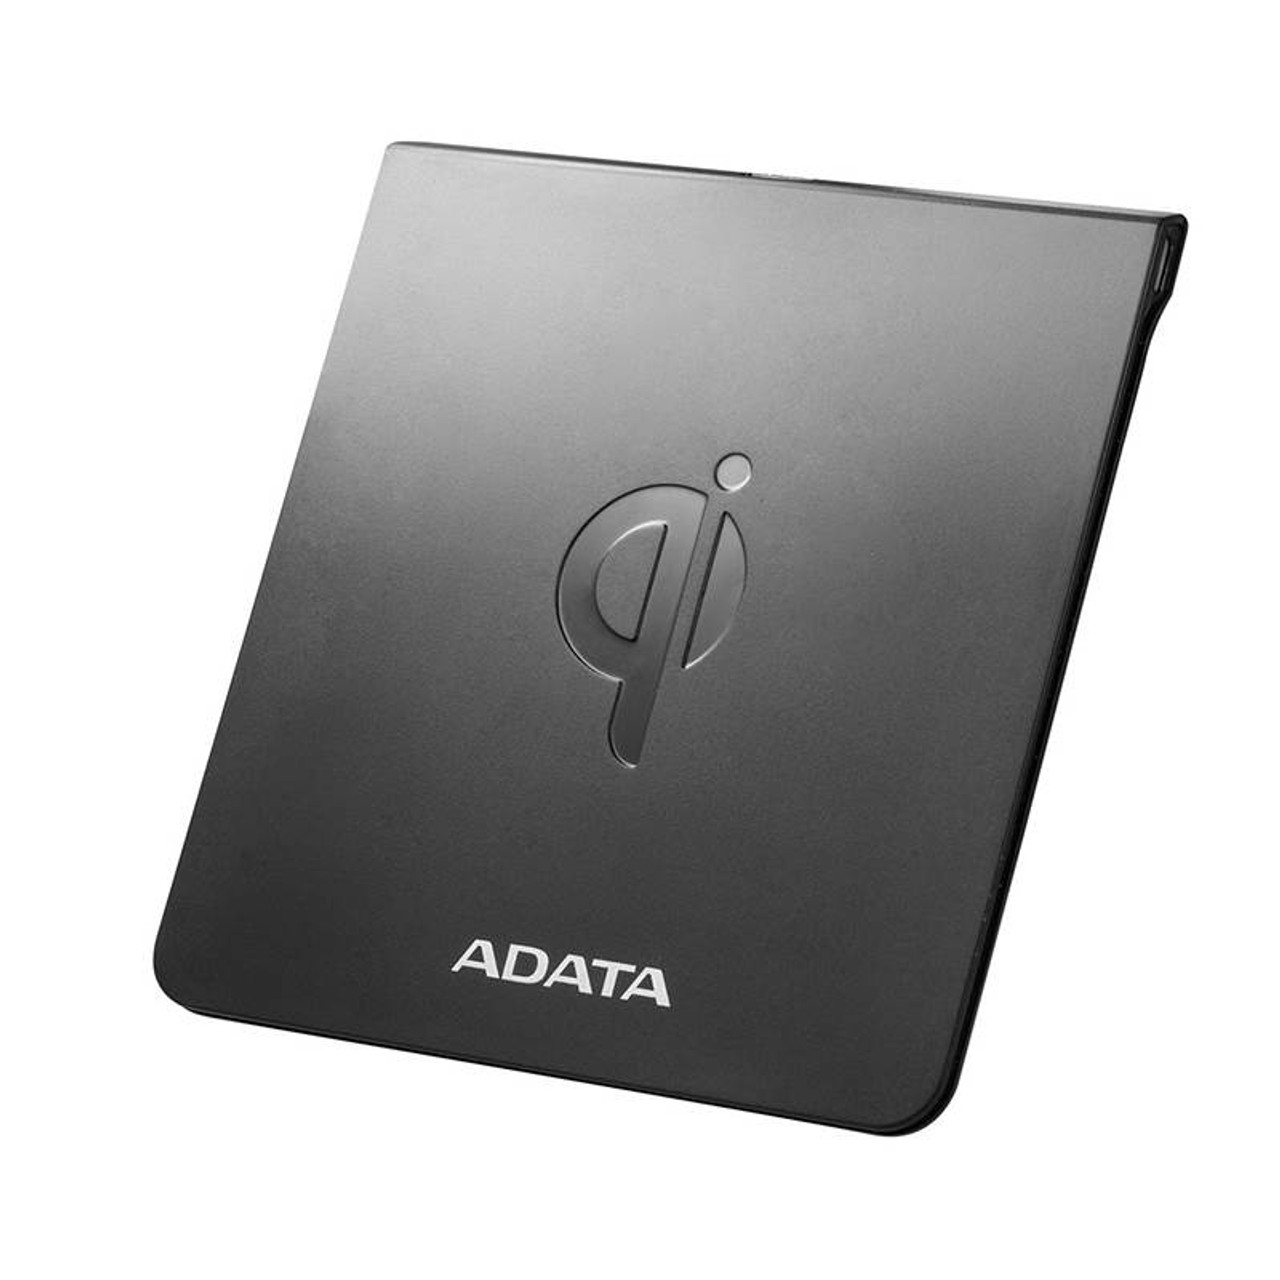 Image for Adata CW0050 Wireless Charging Pad - Black CX Computer Superstore